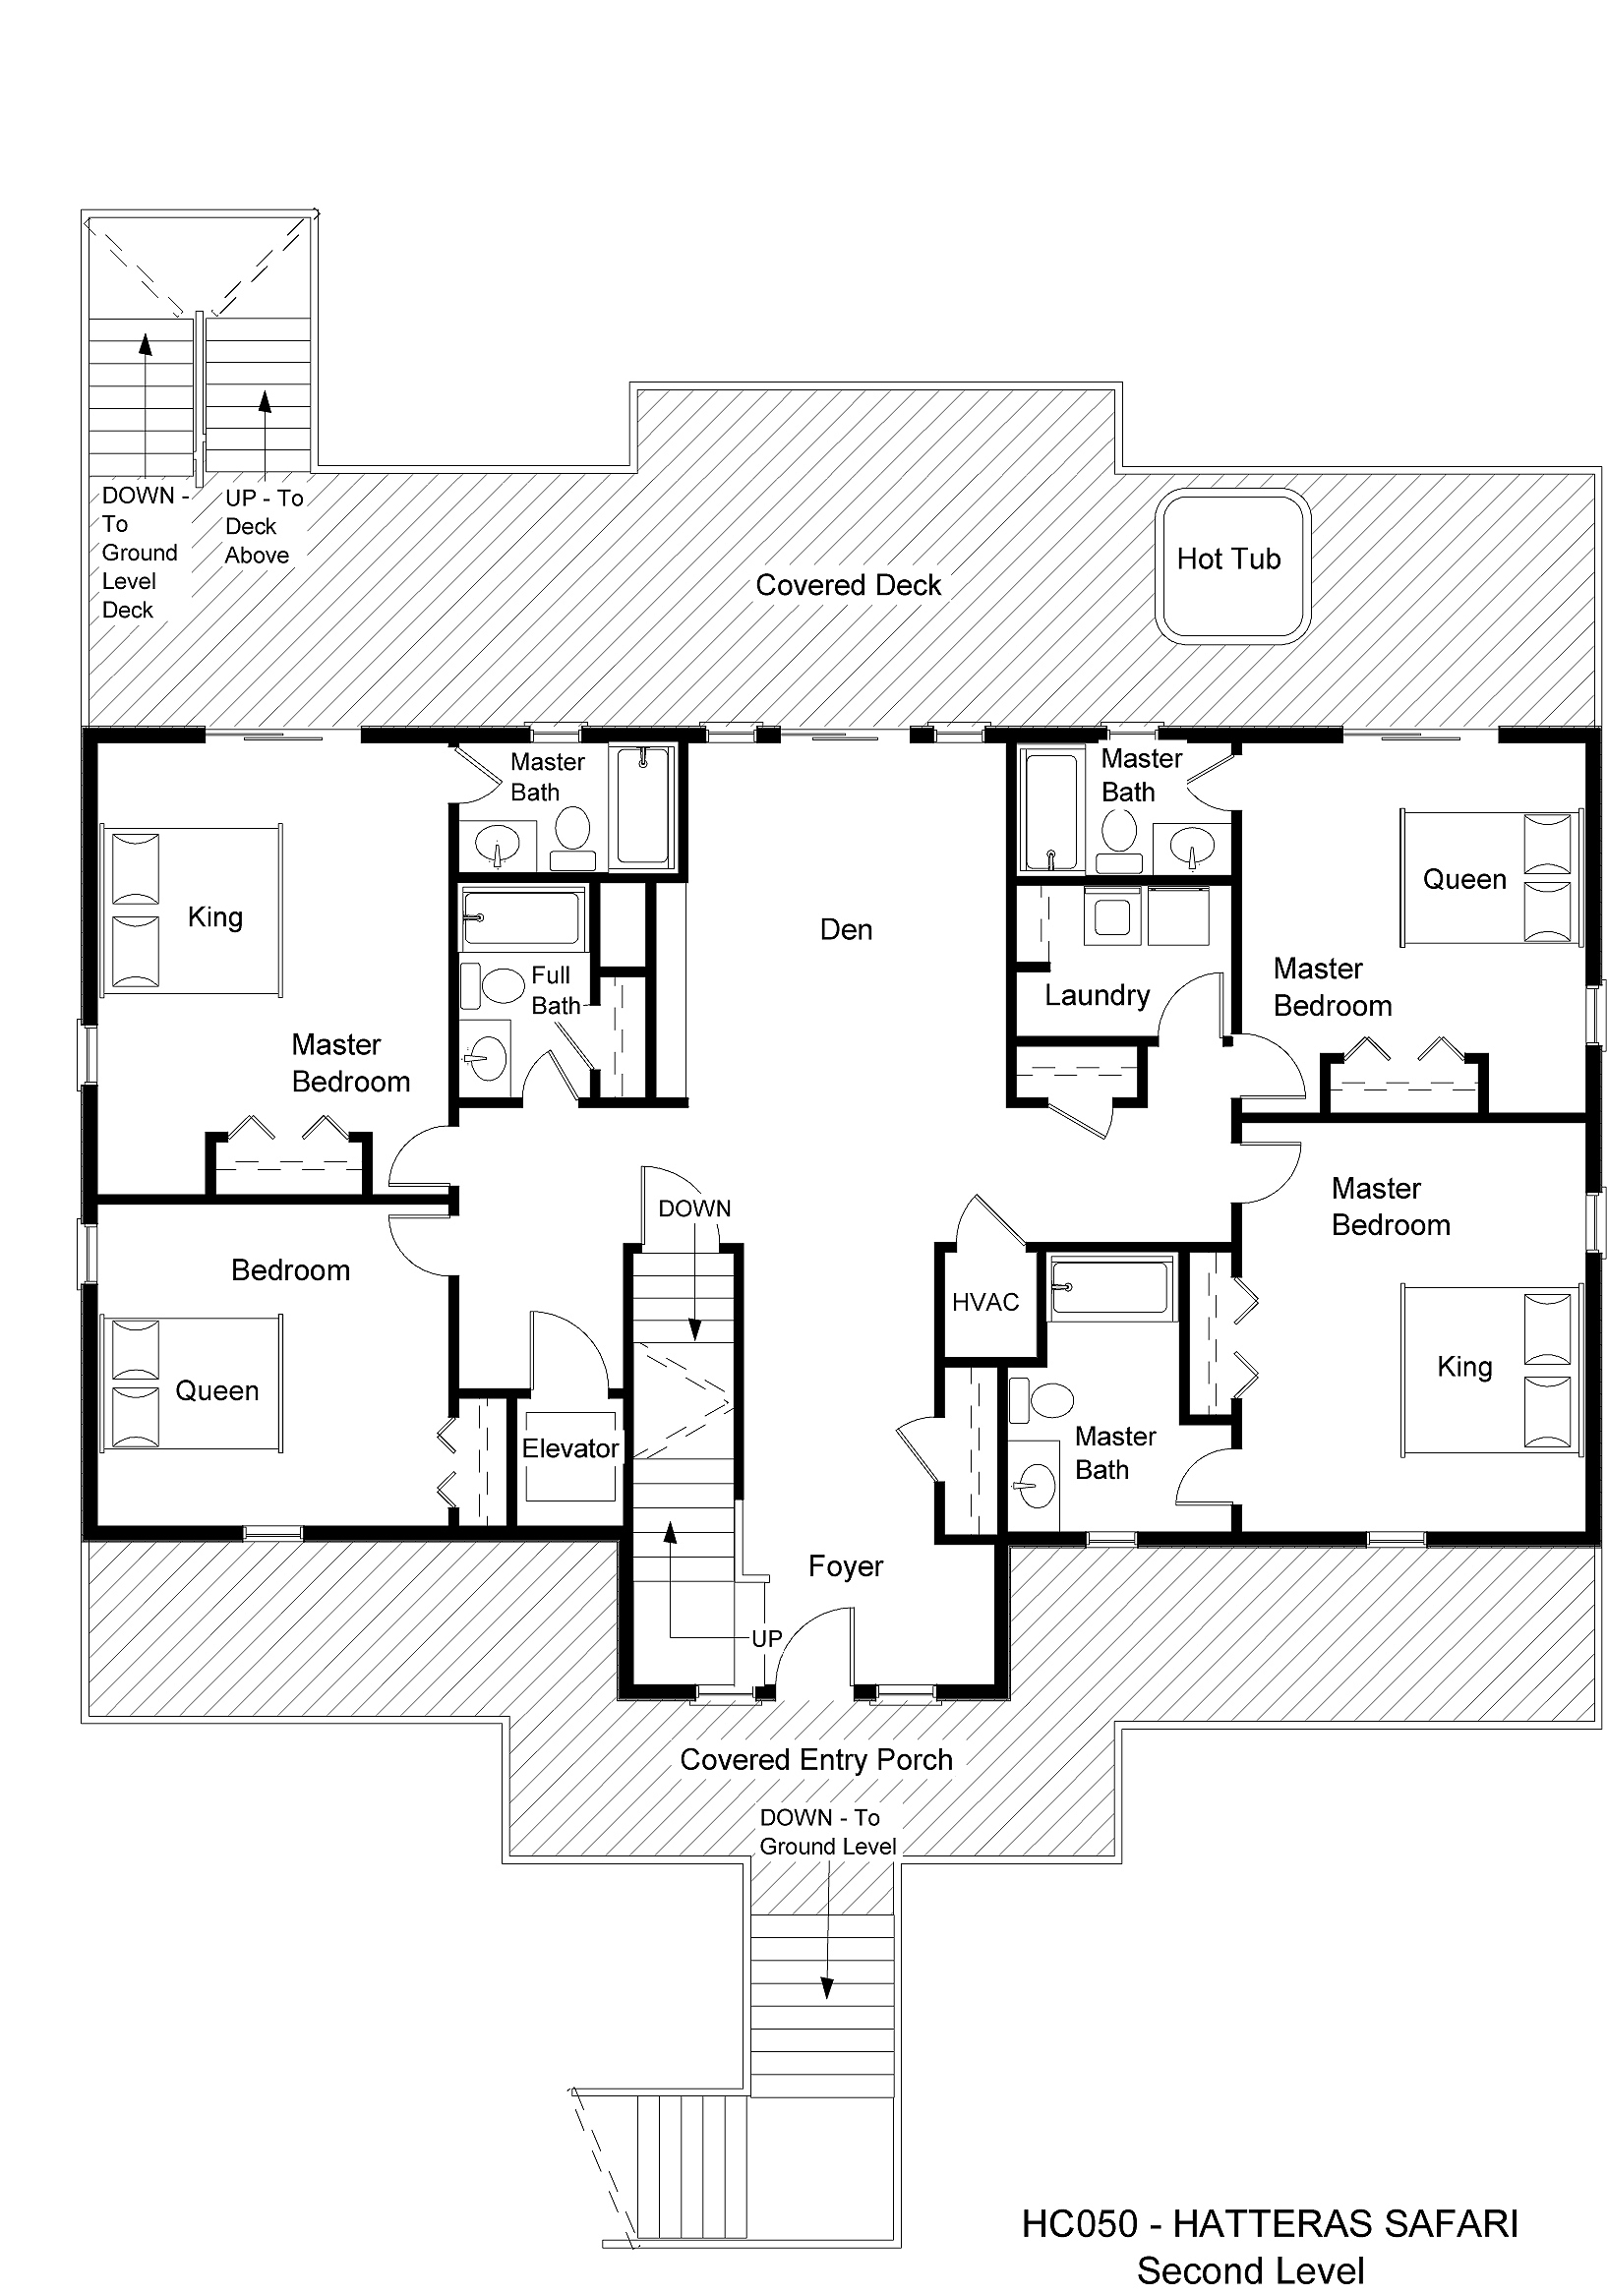 HC050 Hatteras Safari - Floorplan Level 2